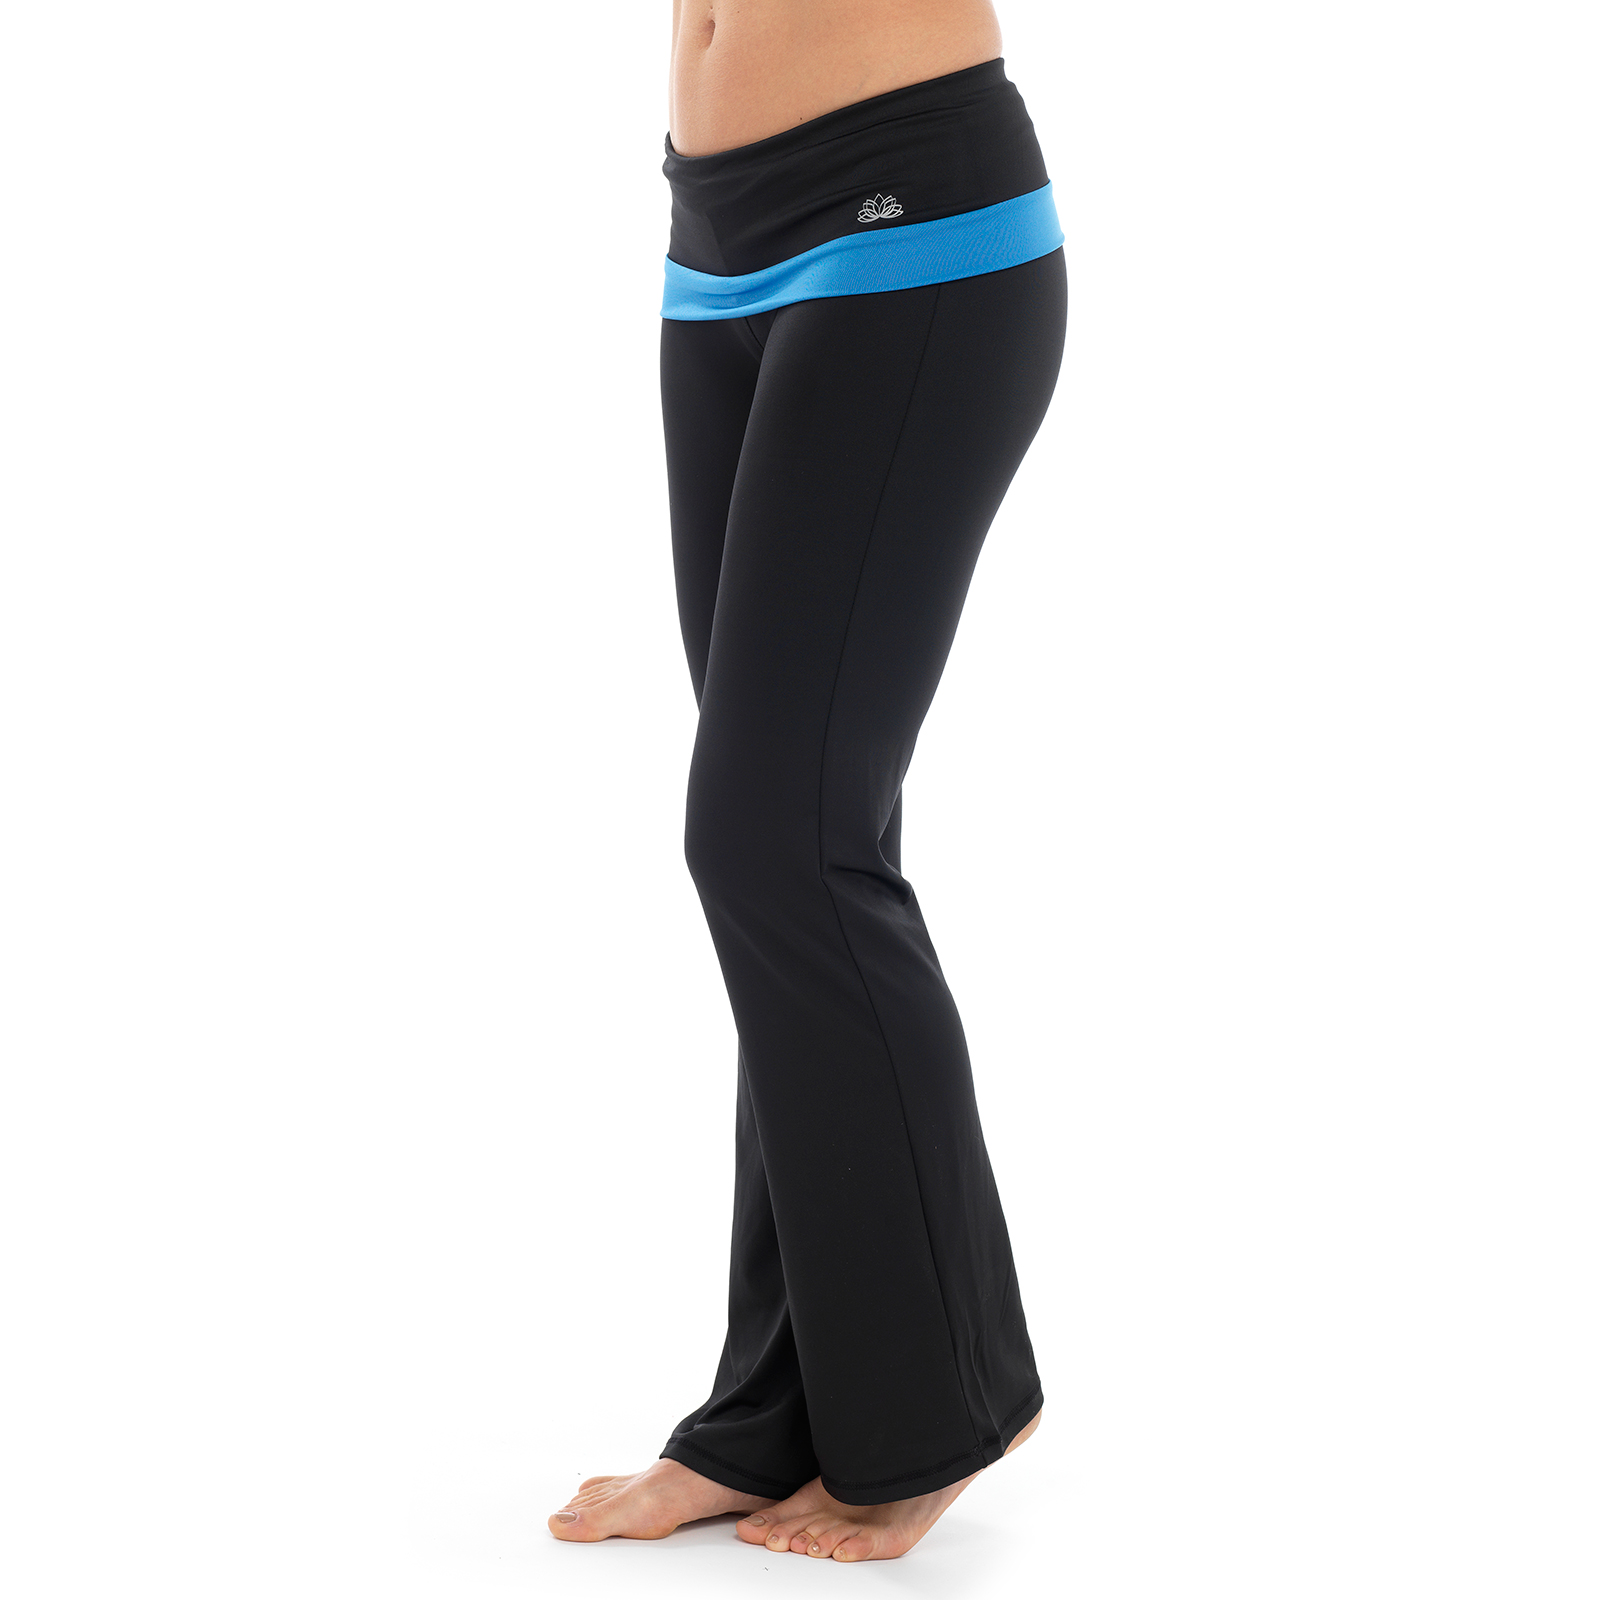 Lightweight and breathable, our yoga trousers have been designed with comfort and flexibility in mind. Our womens yoga pants and leggings are perfect for pilates and yoga .